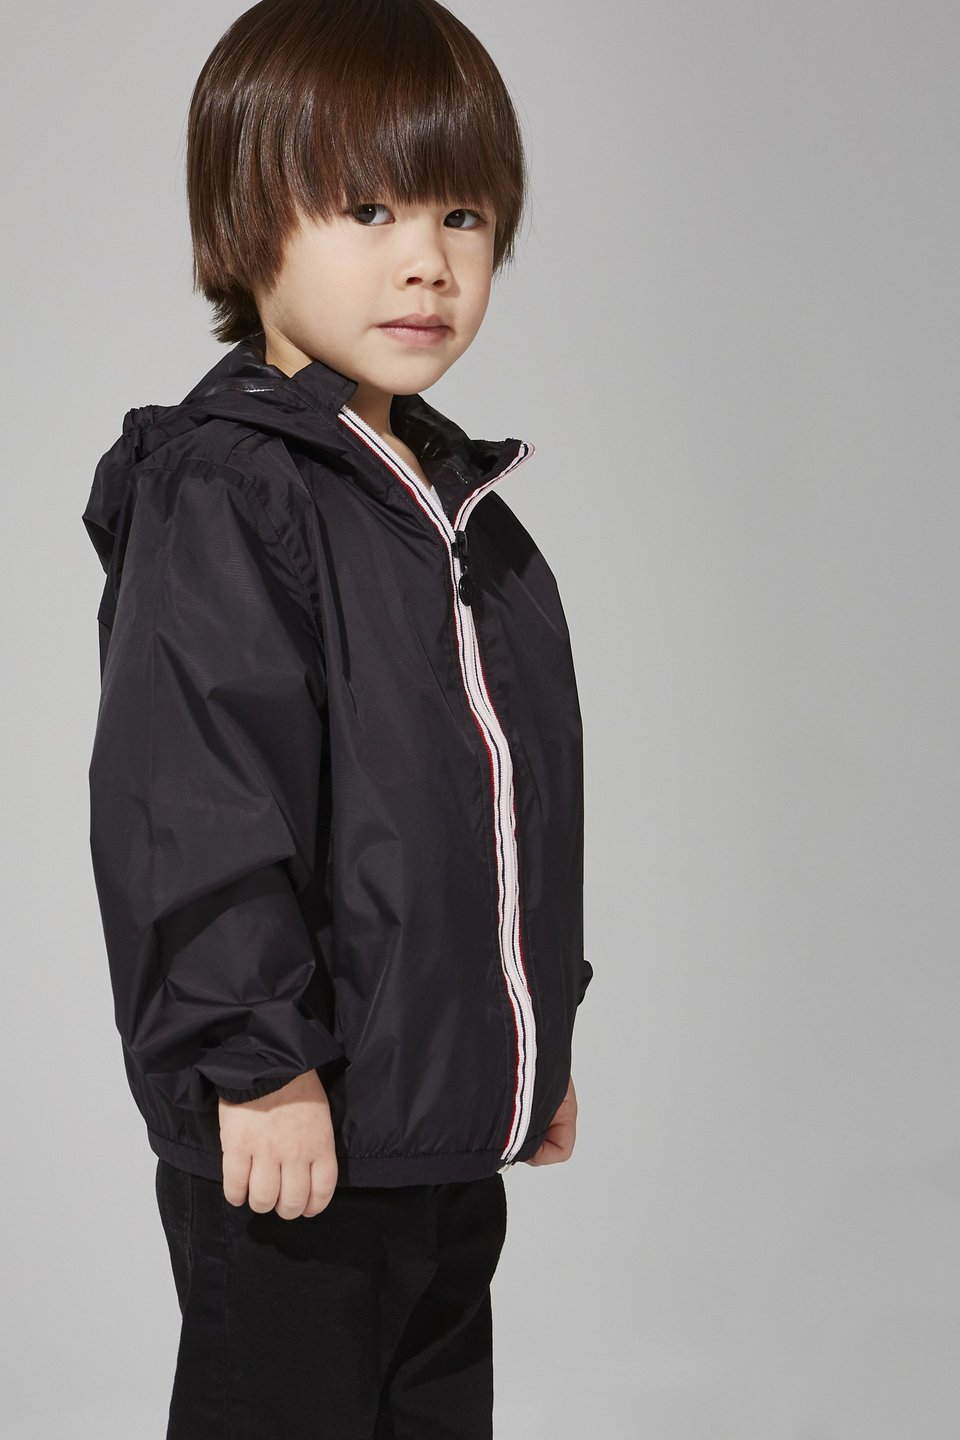 O8 Kids Full Zip Packable Rain Jacket - LittleLeafBaby